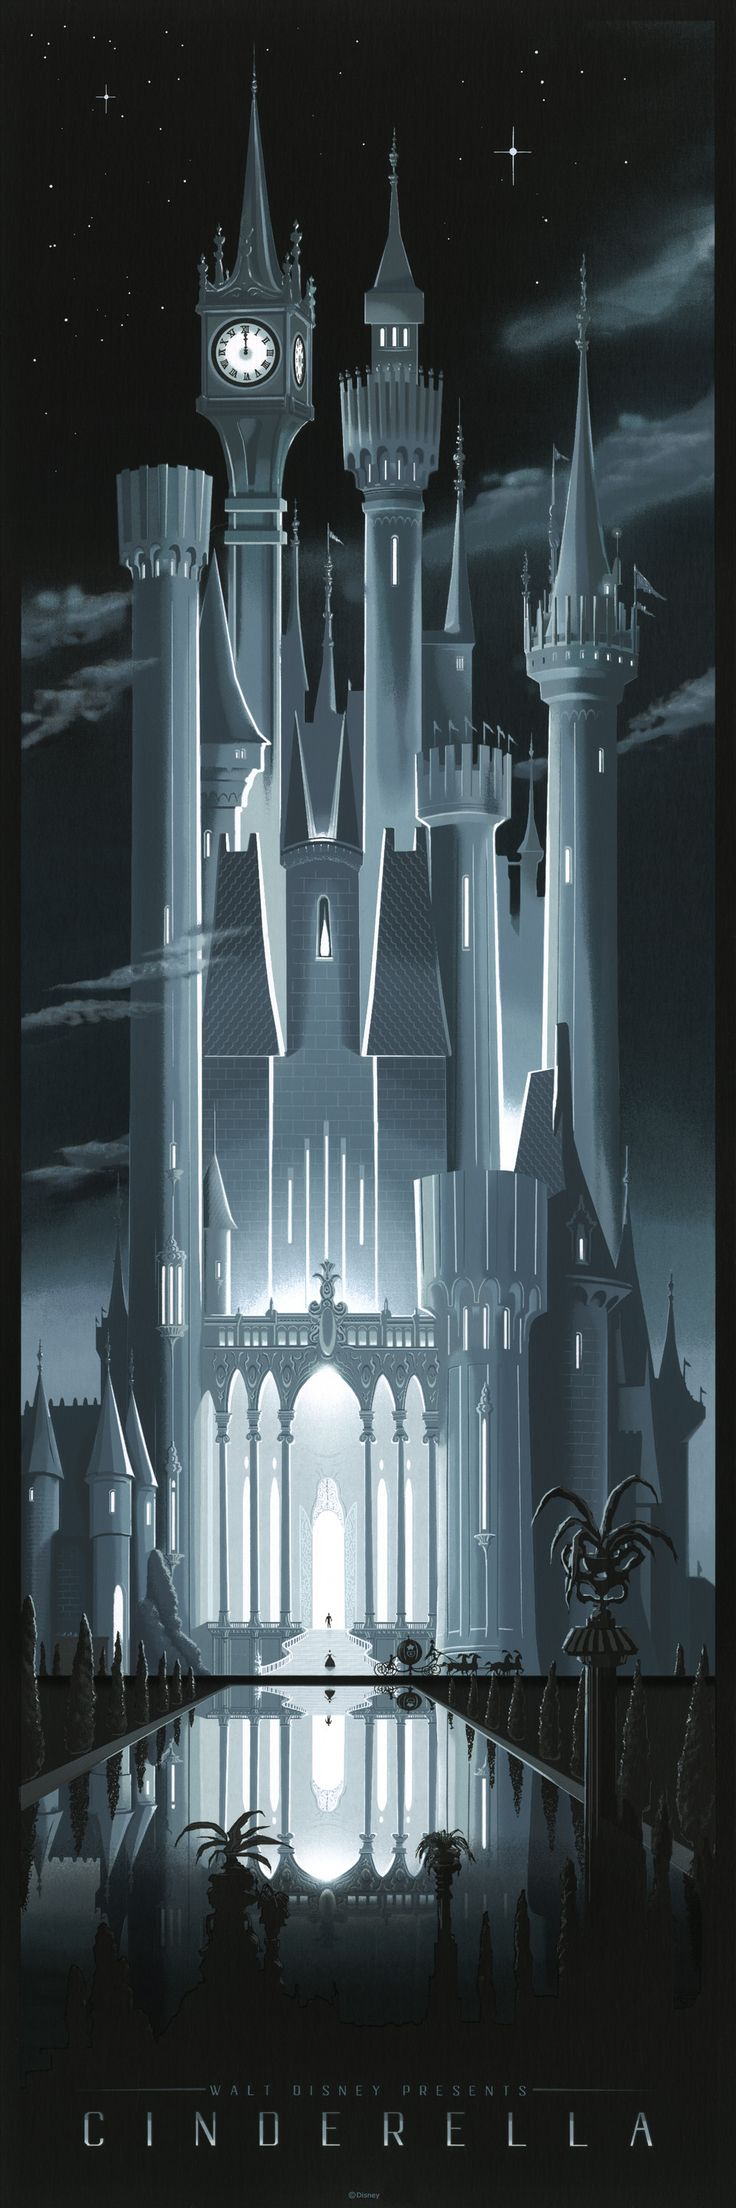 Exclusive: Artist JC Richard On His Amazing Cinderella Castle Print | Disney Insider | Articles